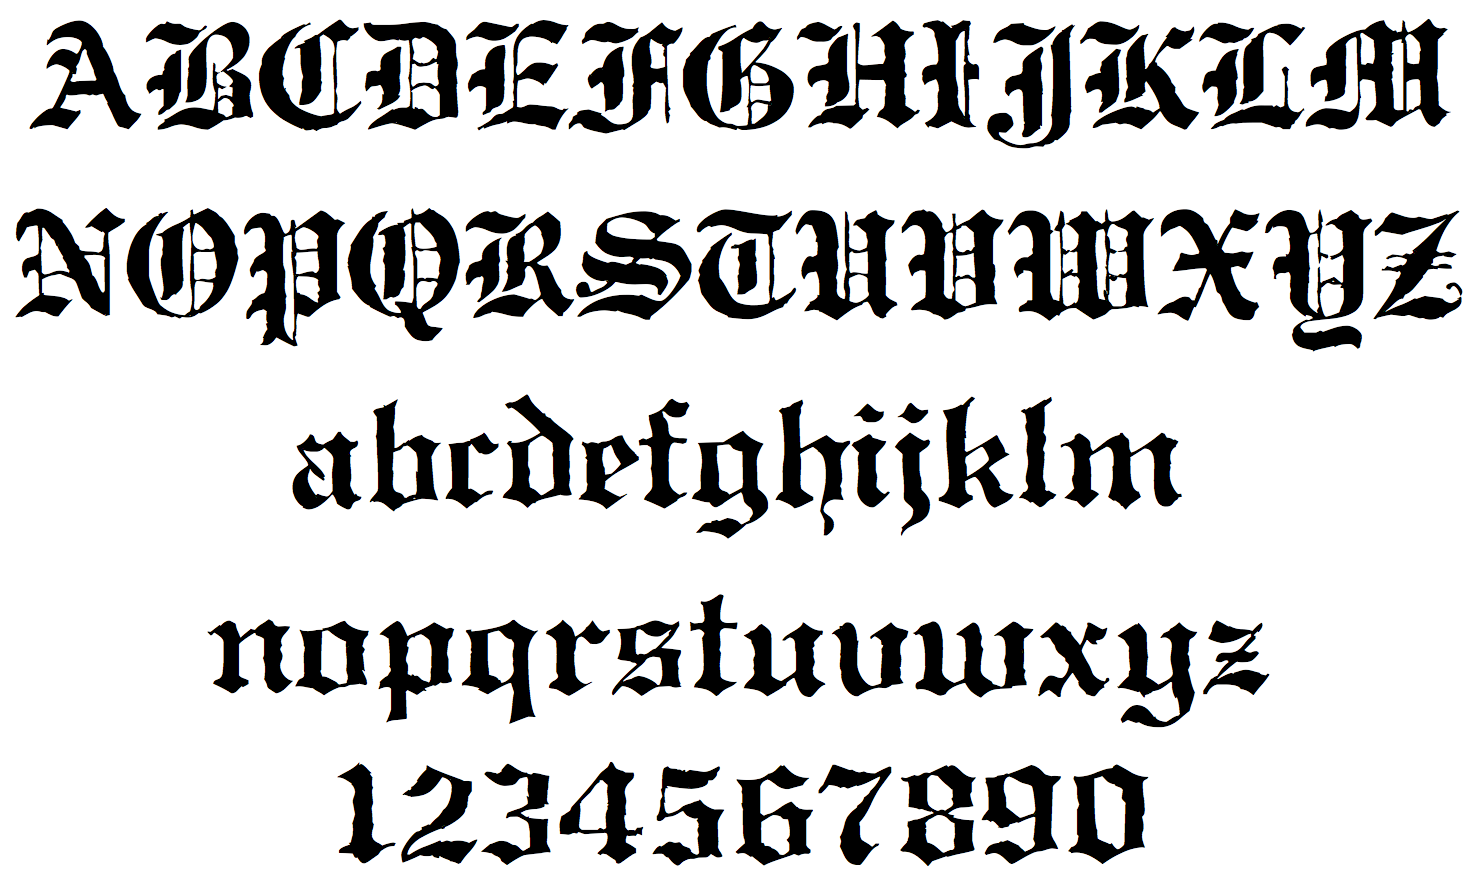 11 calligraphy alphabet gothic font images old Calligraphy writing fonts